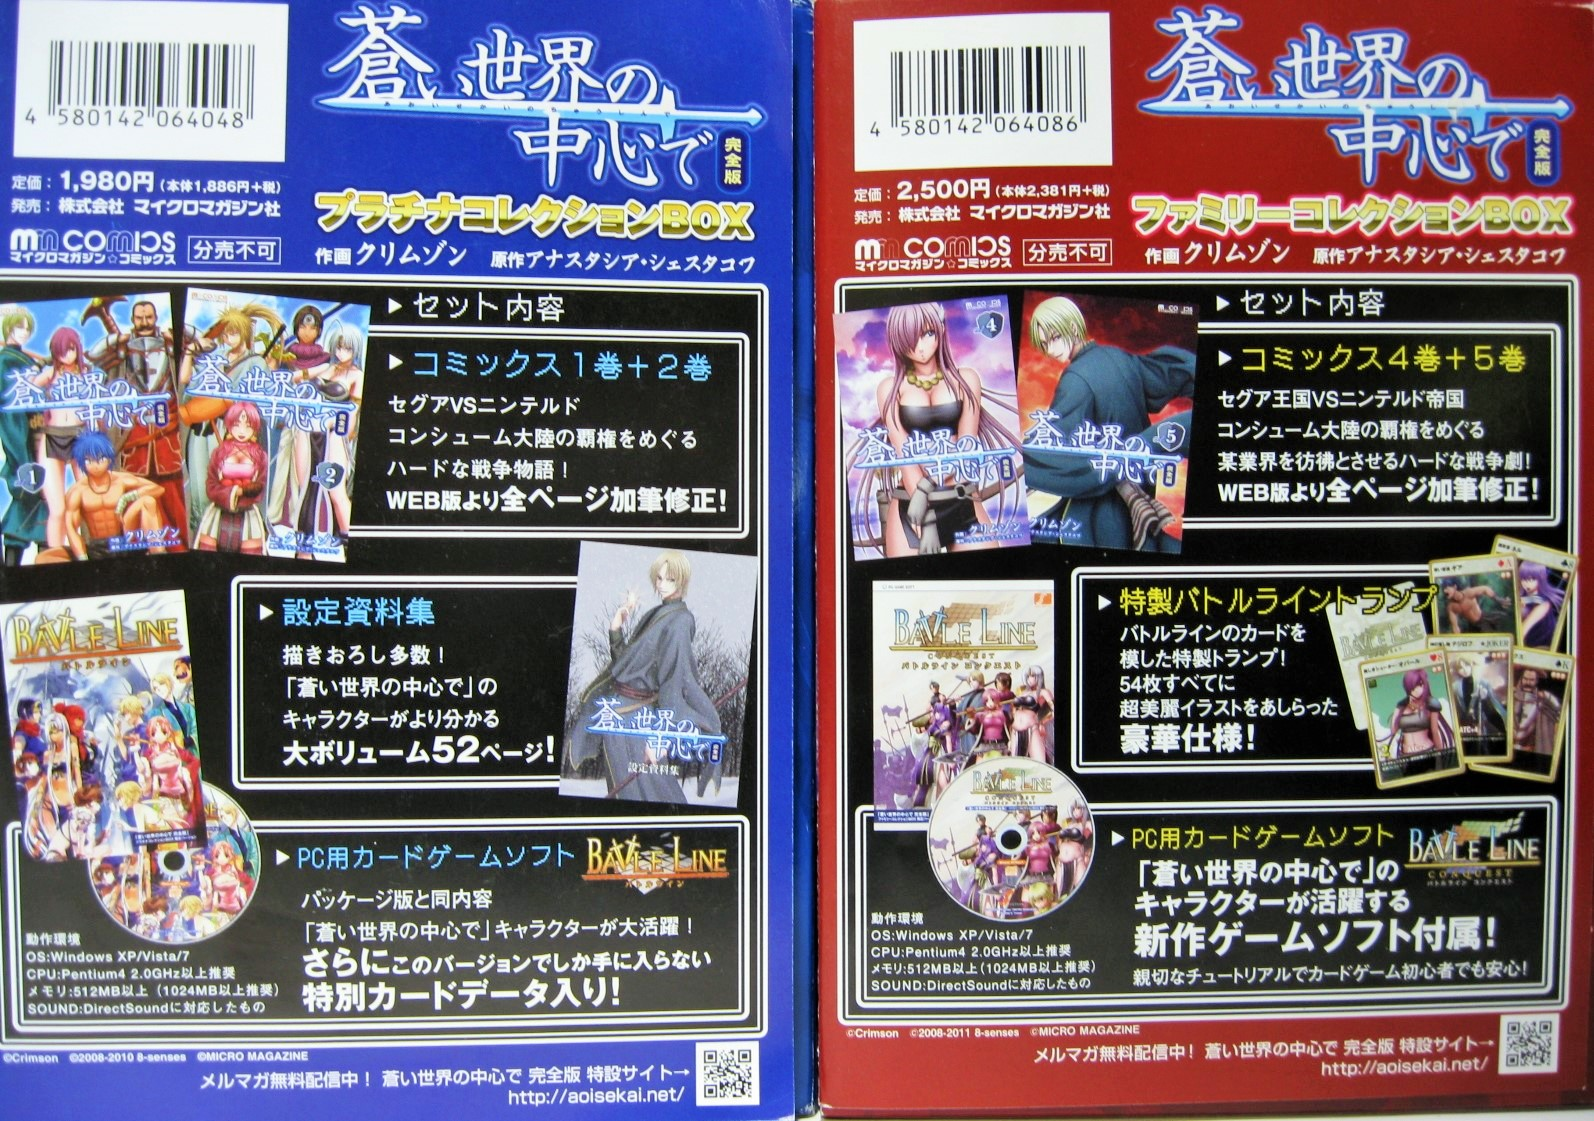 Aoi Sekai no Chuushin de game Card Battle battleline_conquest バトルラインコンクエスト 青い世界の中心で